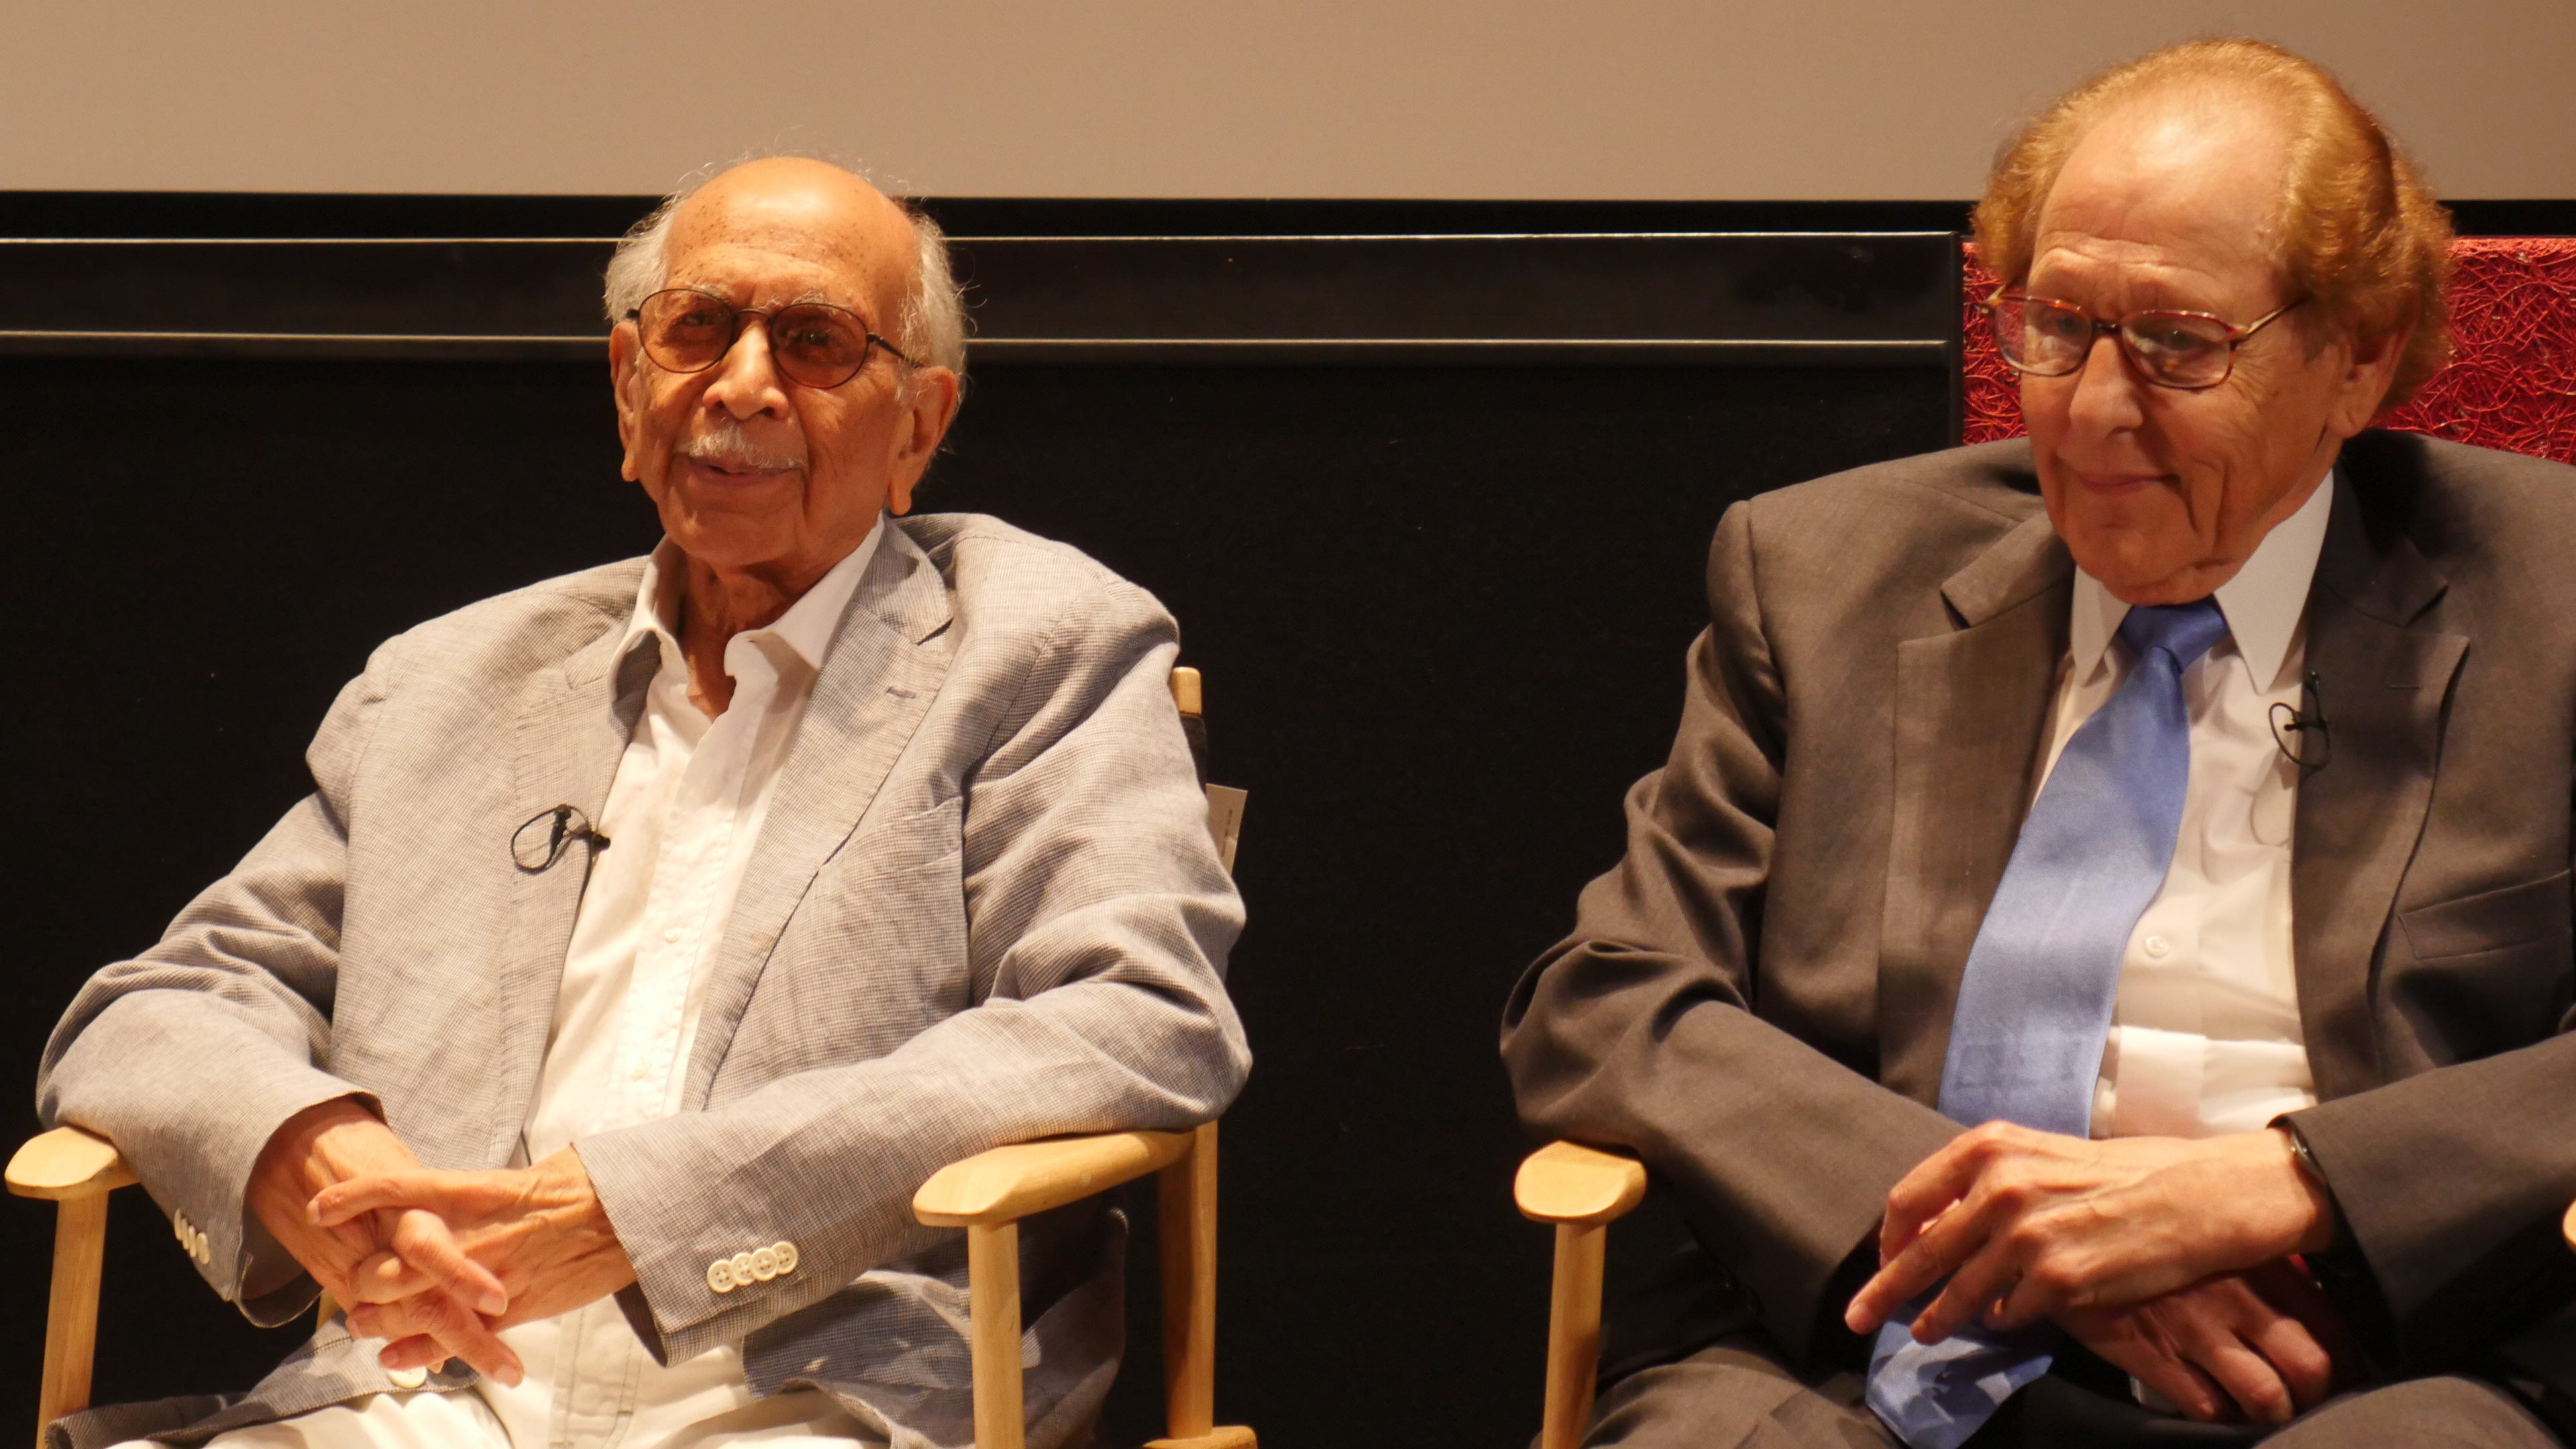 Senior members Doss, de Souza and Camara at the CSUN HFPA event